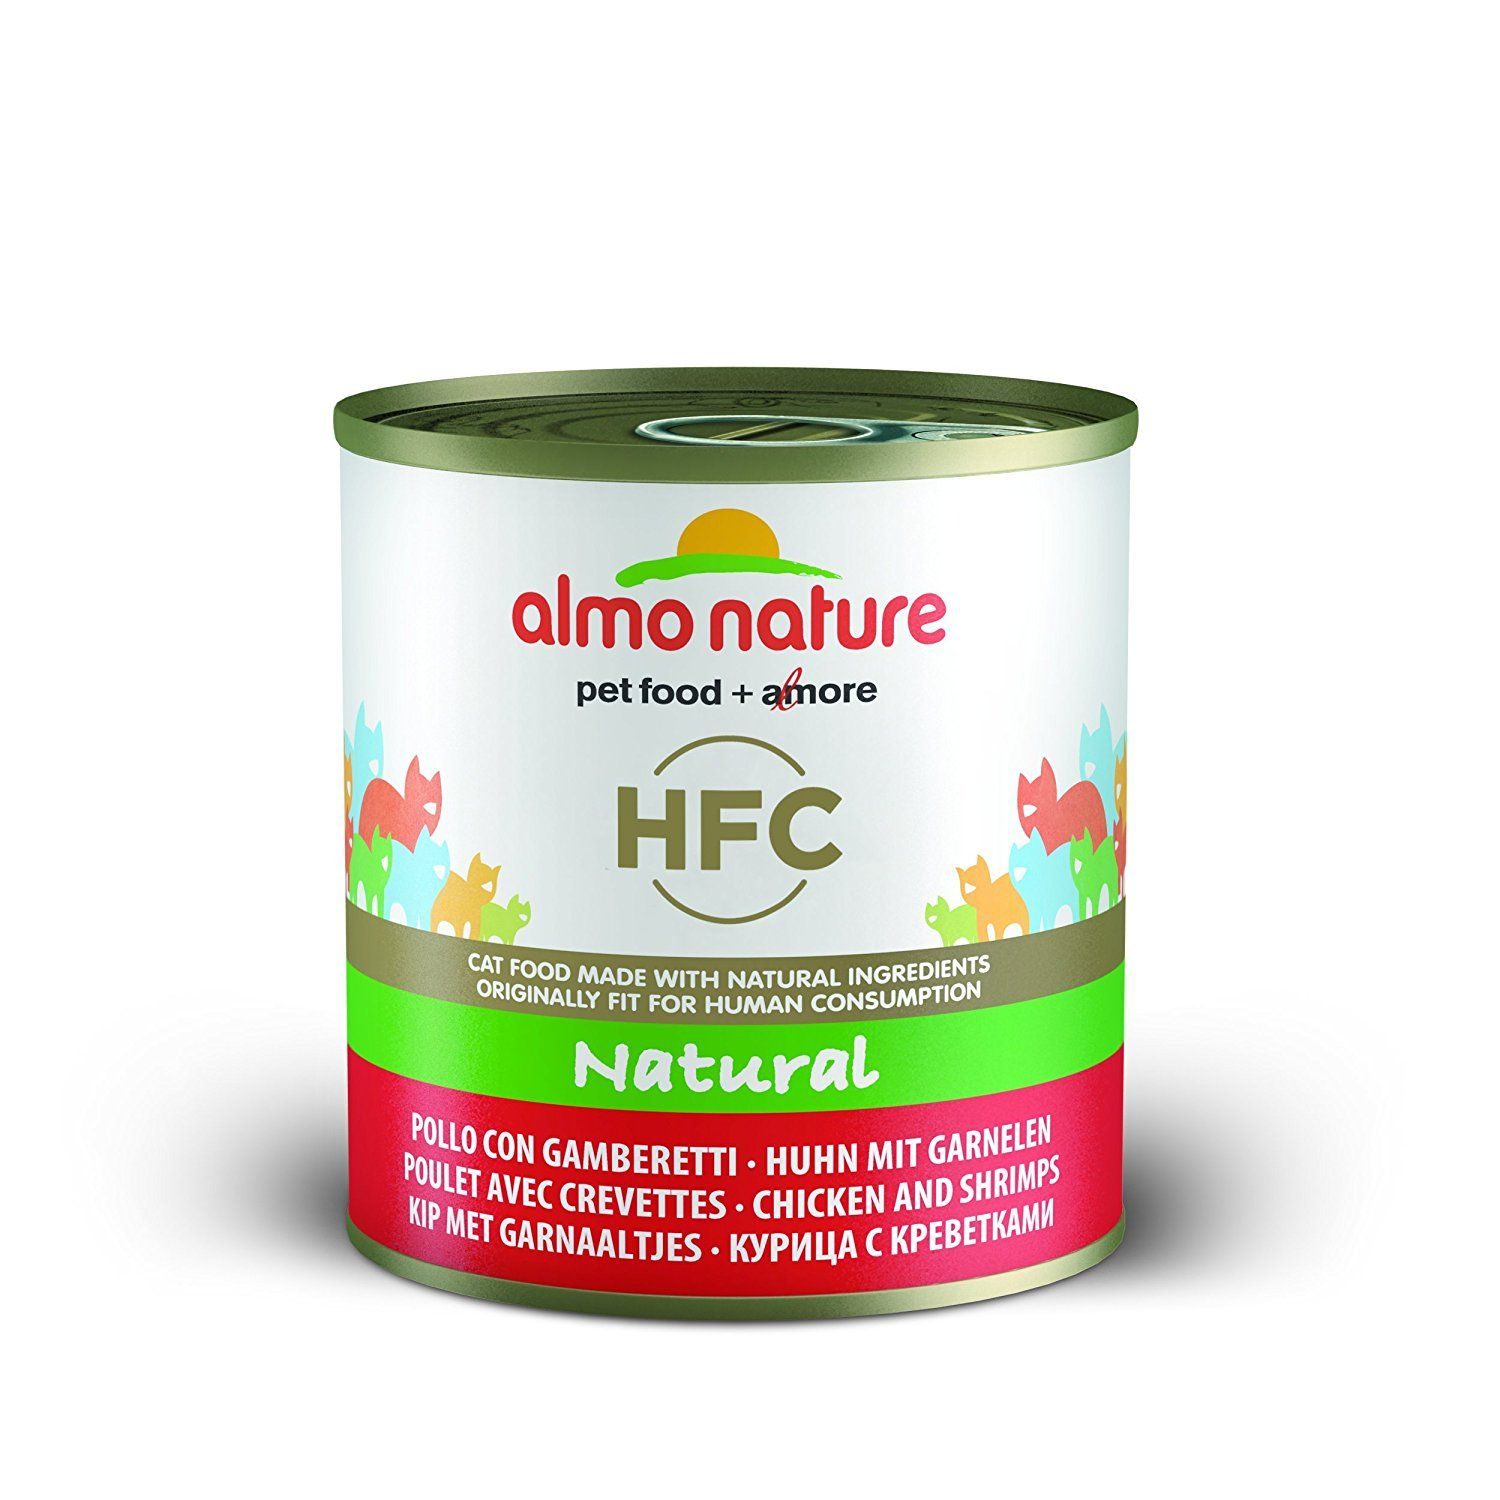 Almo Nature Hfc Natural Chicken And Shrimps Pack Of 12 X 280g Tin Natural Chicken Chicken And Shrimp Food Animals